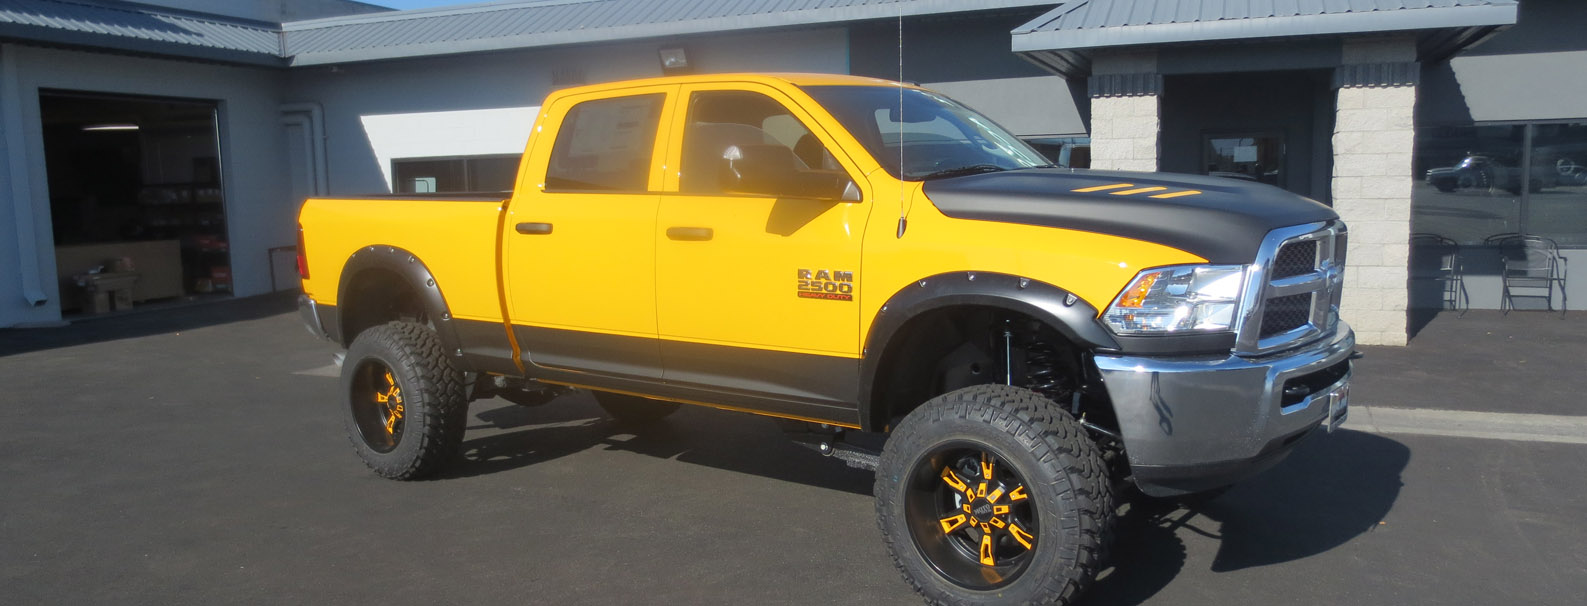 hight resolution of custom truck accessories is now offering truck campers